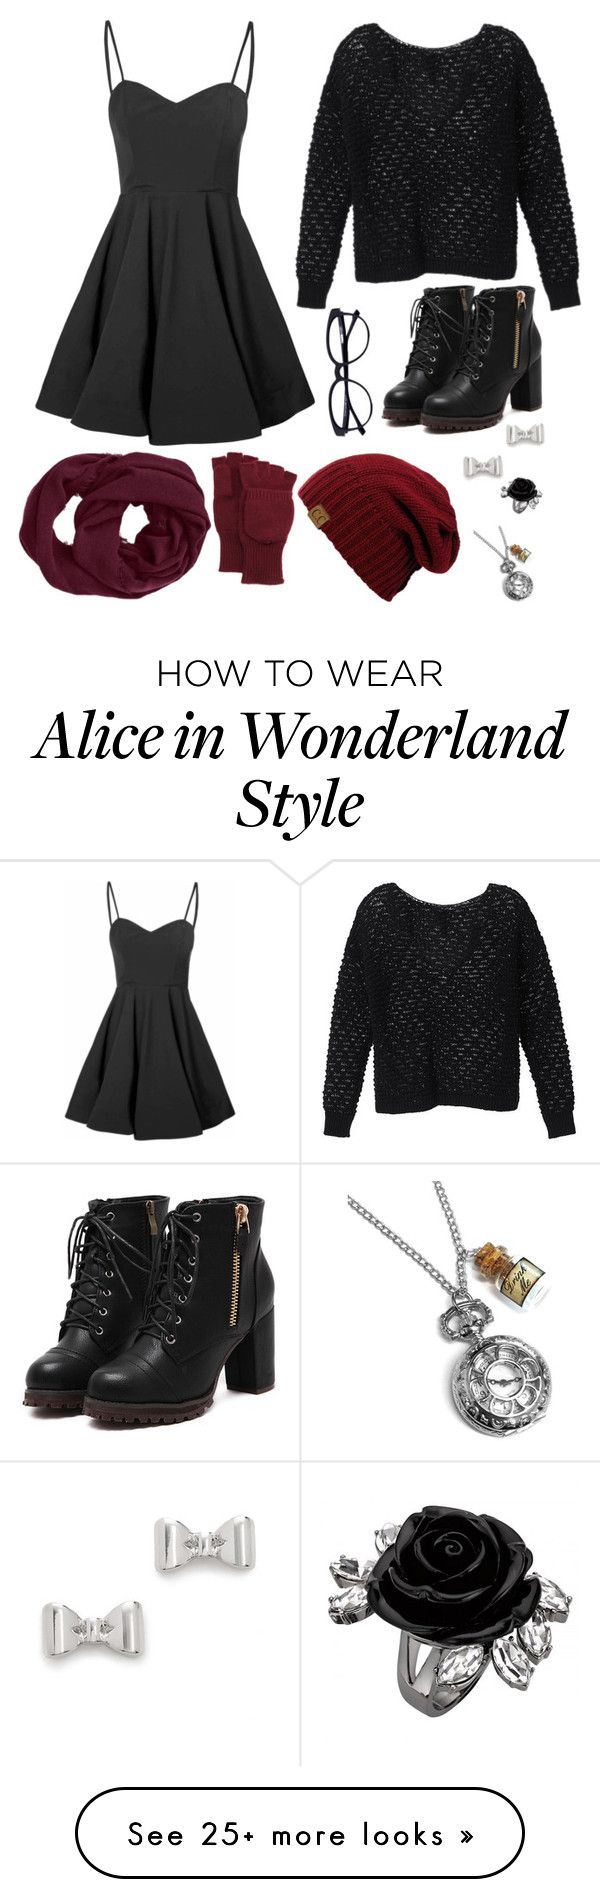 """Untitled #263"" by ginja-ninja on Polyvore featuring Glamorous, Victoria's Secret, Neiman Marcus, Athleta and Marc by Marc Jacobs"